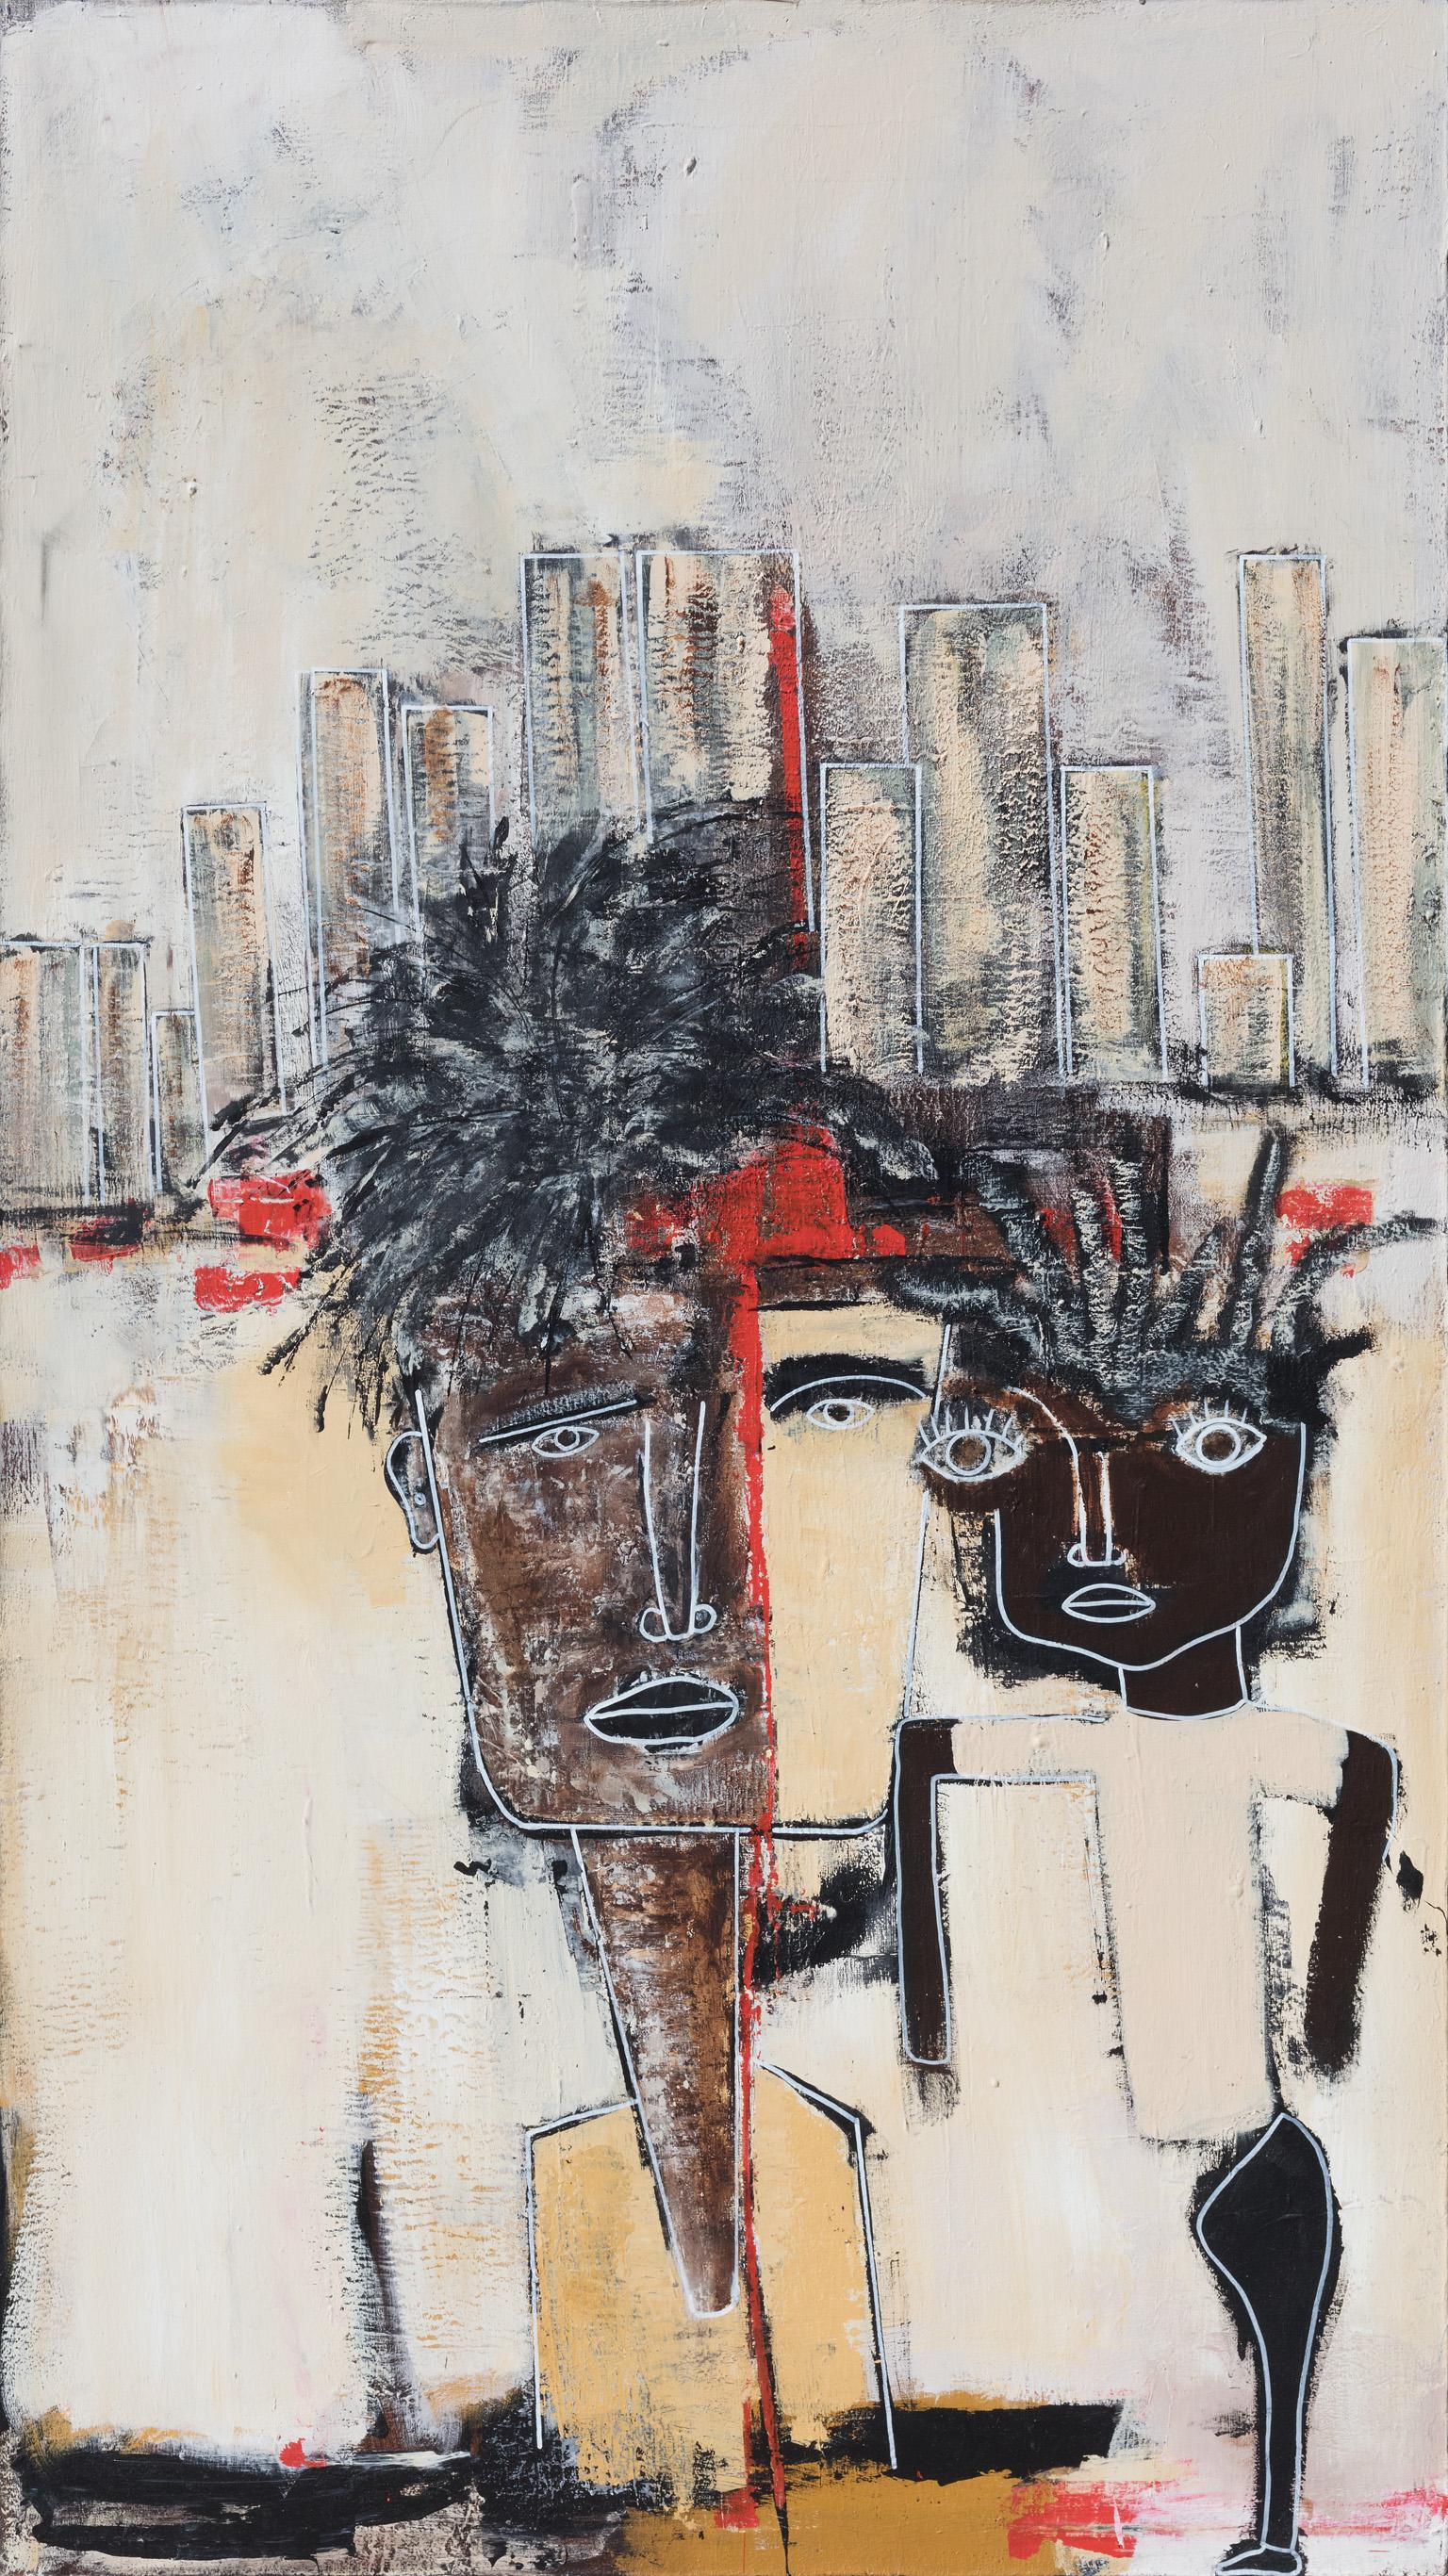 The Tourist - Large Expressionist Figurative Painting of Two Figures